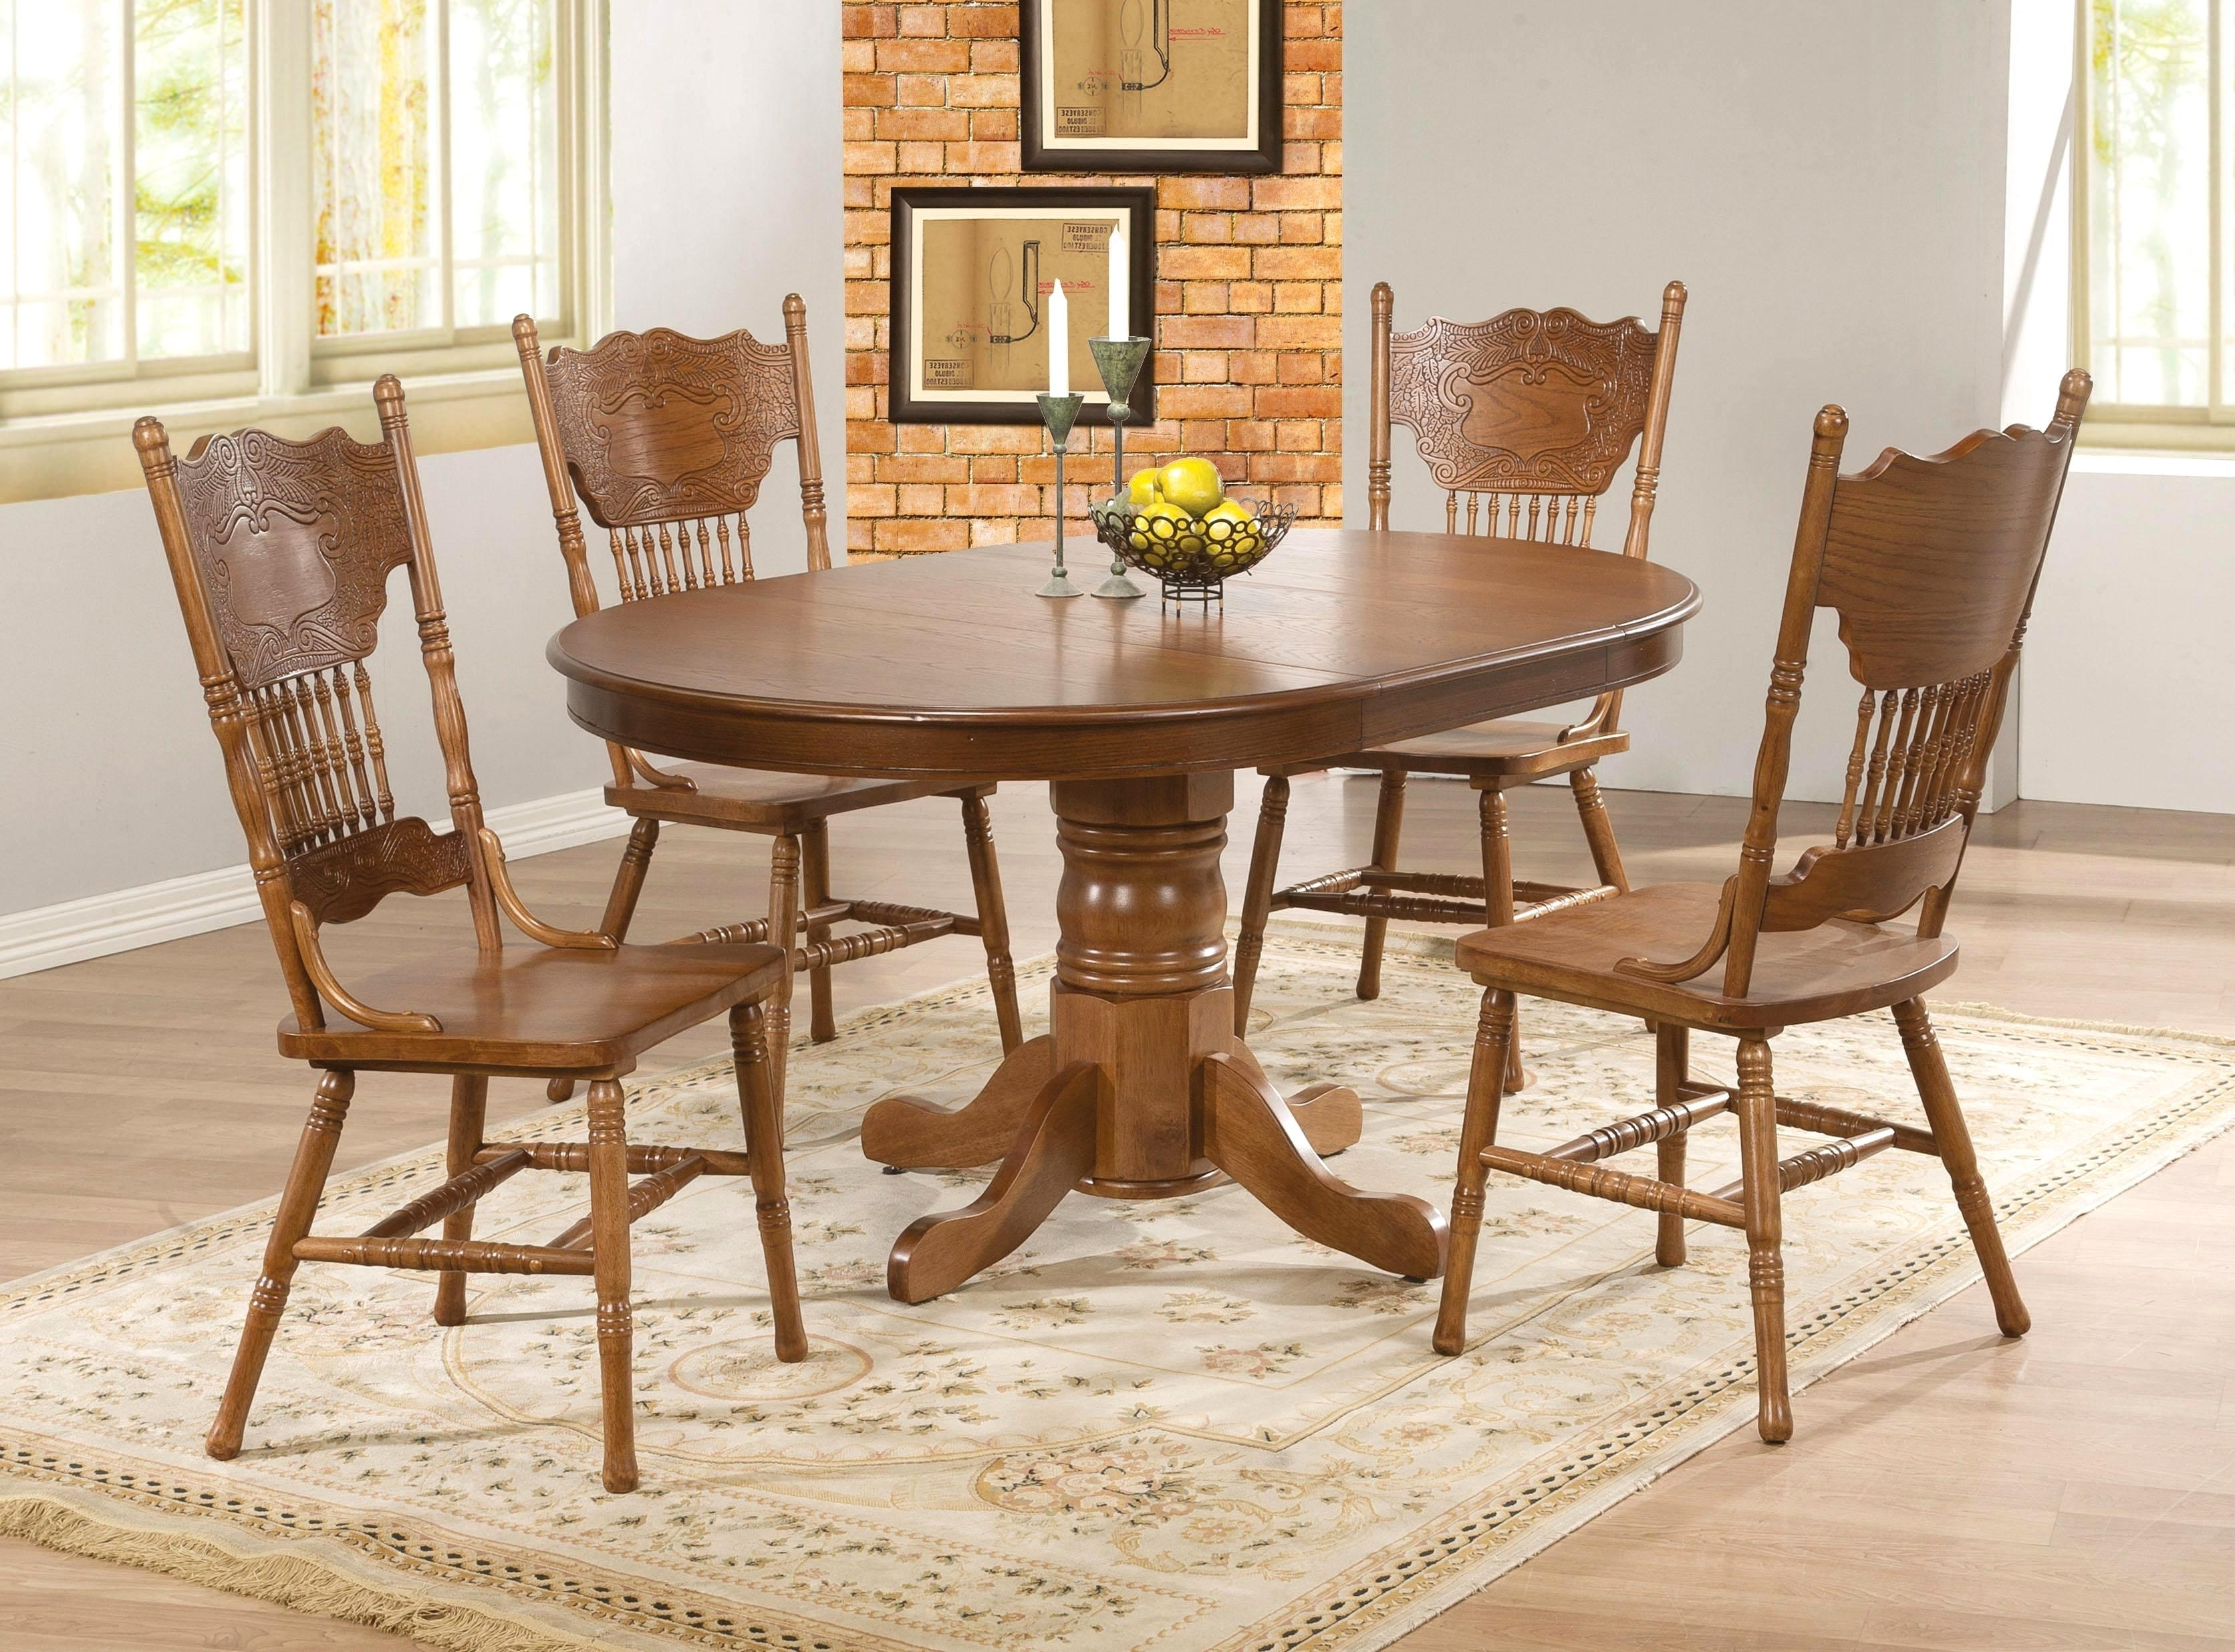 Most Current 31 Oval Oak Dining Table Chairs Catalouge – Edmaps Home Decoration Pertaining To Oval Oak Dining Tables And Chairs (View 11 of 25)